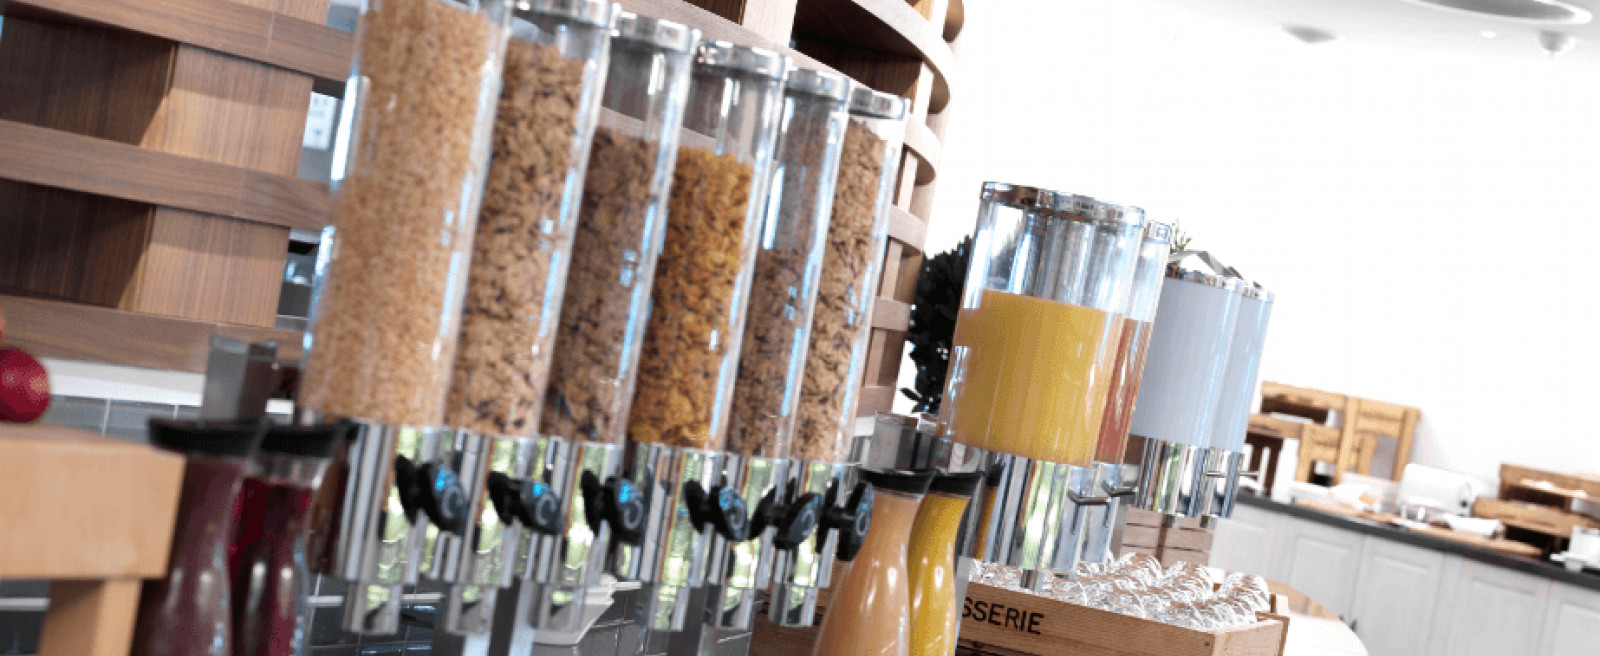 Breakfast Service with Cereals and Juice in Carafes